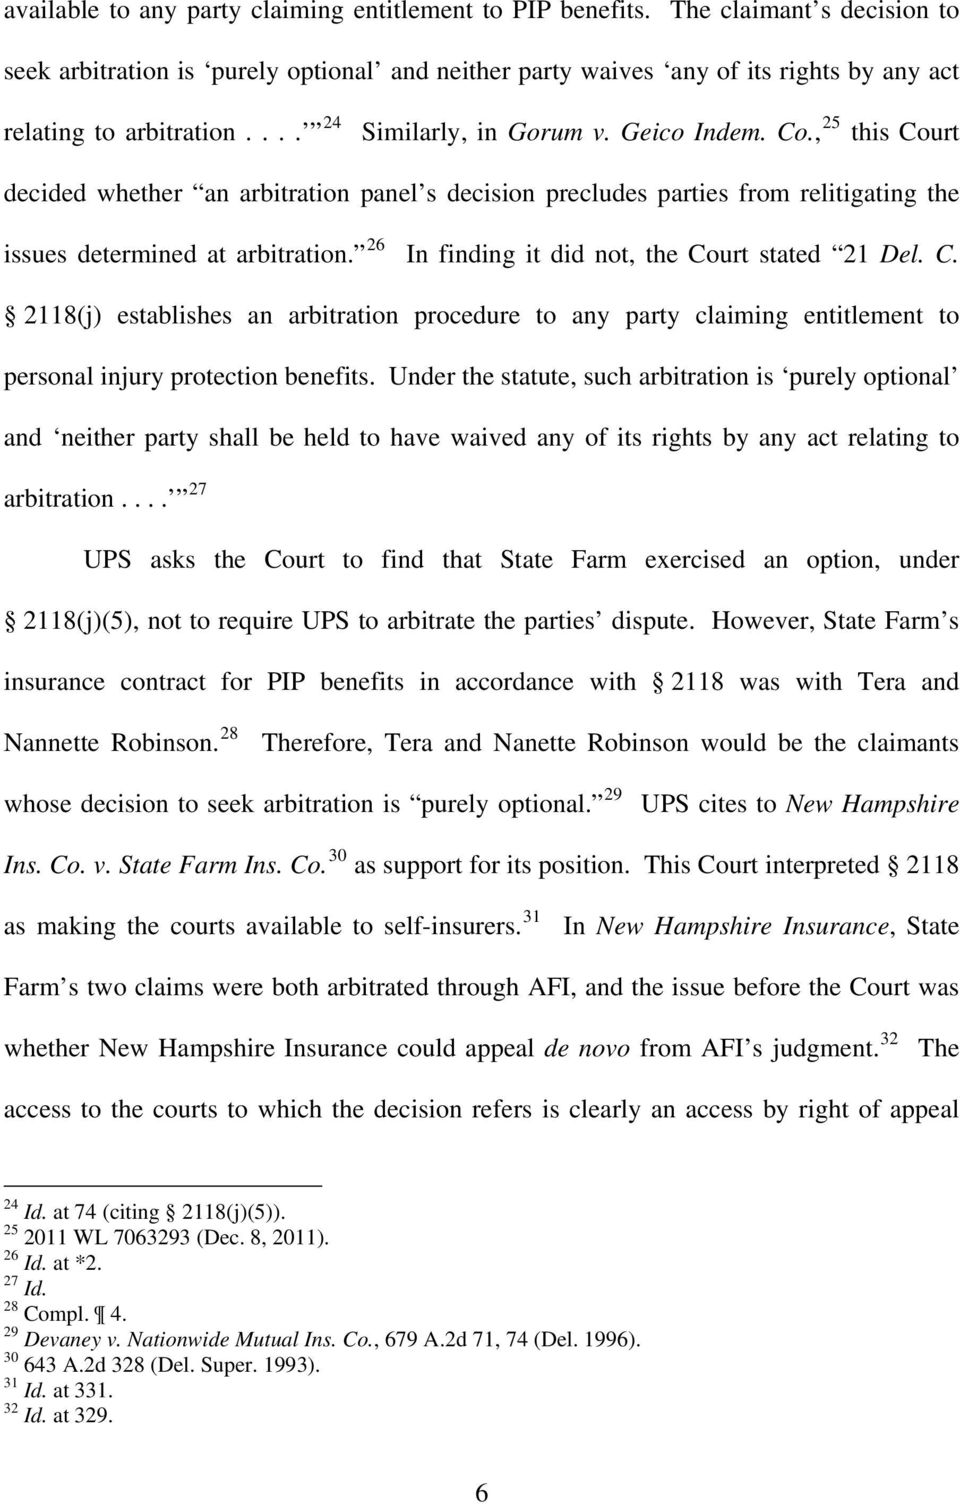 , 25 this Court decided whether an arbitration panel s decision precludes parties from relitigating the issues determined at arbitration. 26 In finding it did not, the Court stated 21 Del. C. 2118(j) establishes an arbitration procedure to any party claiming entitlement to personal injury protection benefits.